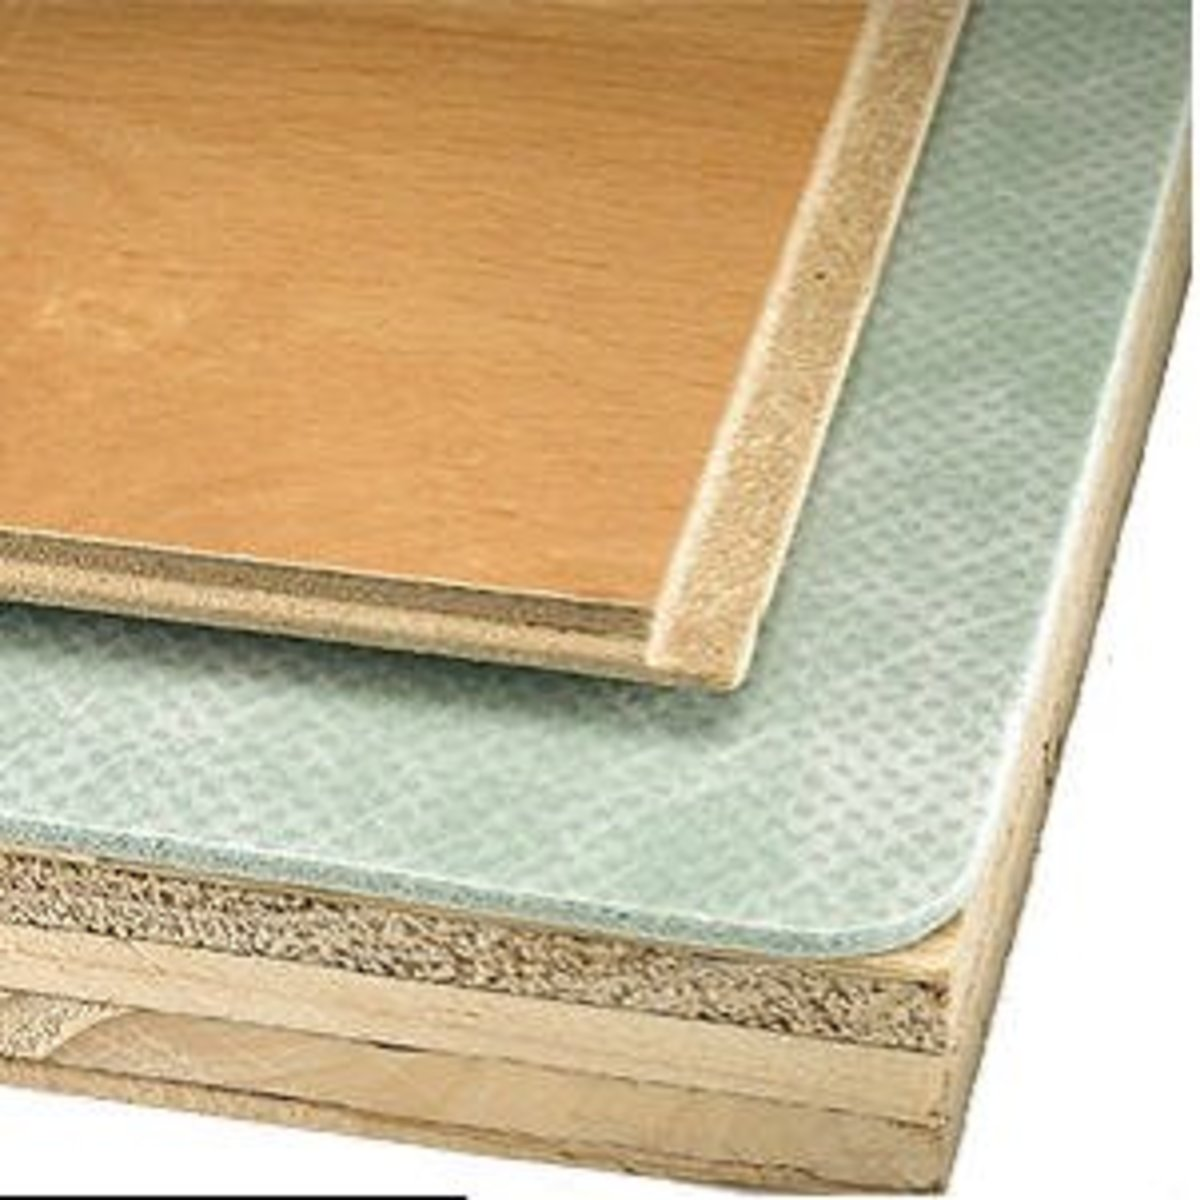 QuietMaxx Is A Popular Laminate Underlayment. An Underlayment Is Important  Not Only With Buffering Sounds